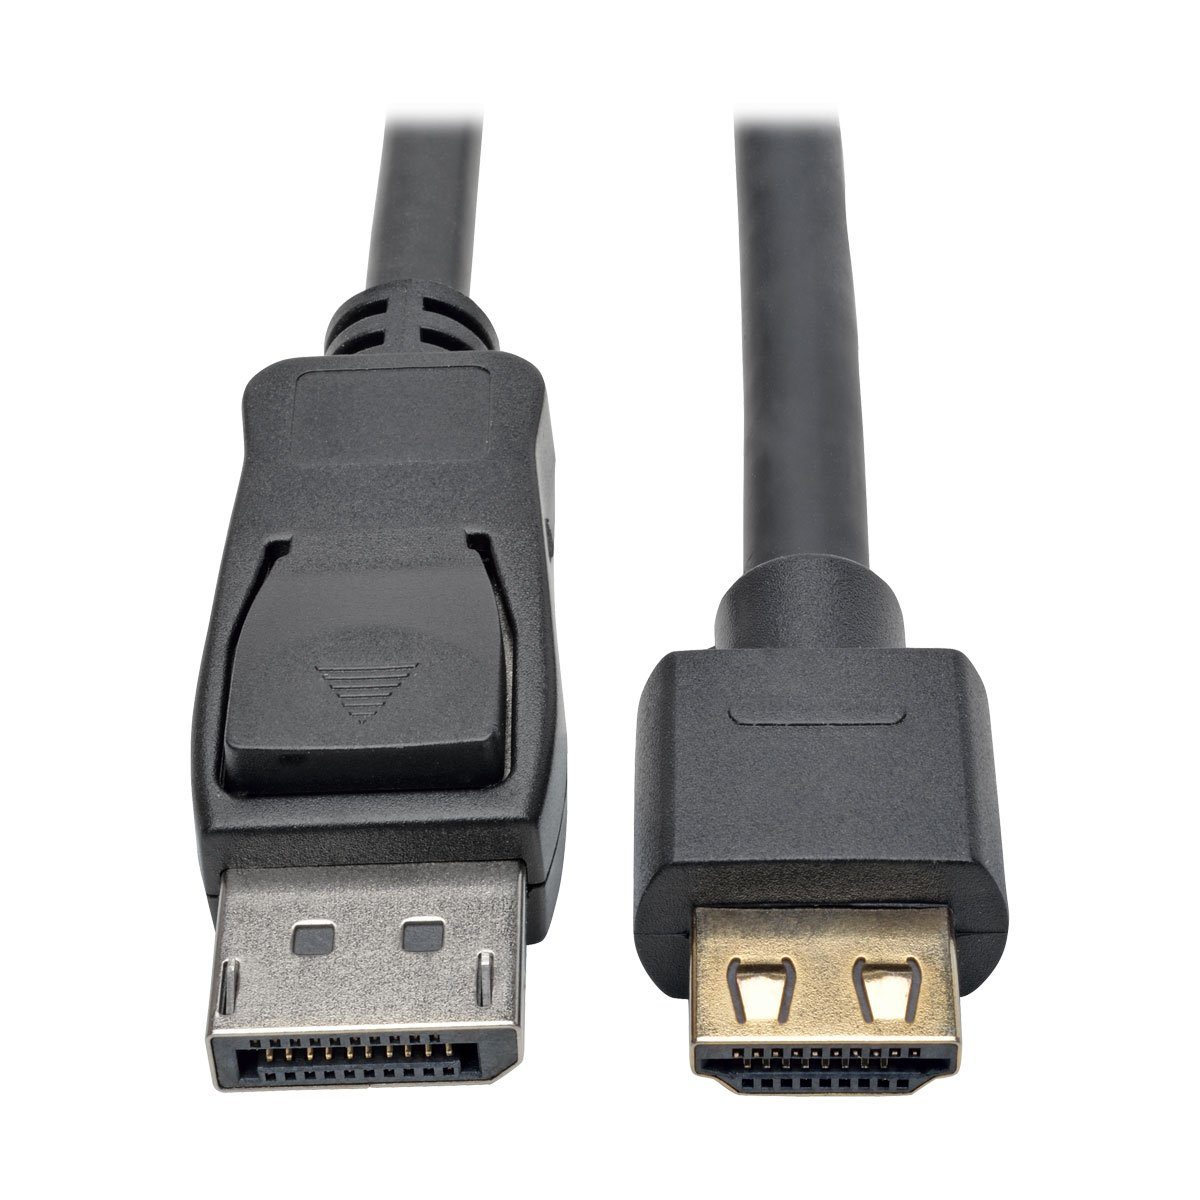 Tripp Lite DisplayPort 1.2a to HDMI Adapter Cable, Active with Gripping HDMI Plug M/M DP 4K, 10' (P582-010-HD-V2A)